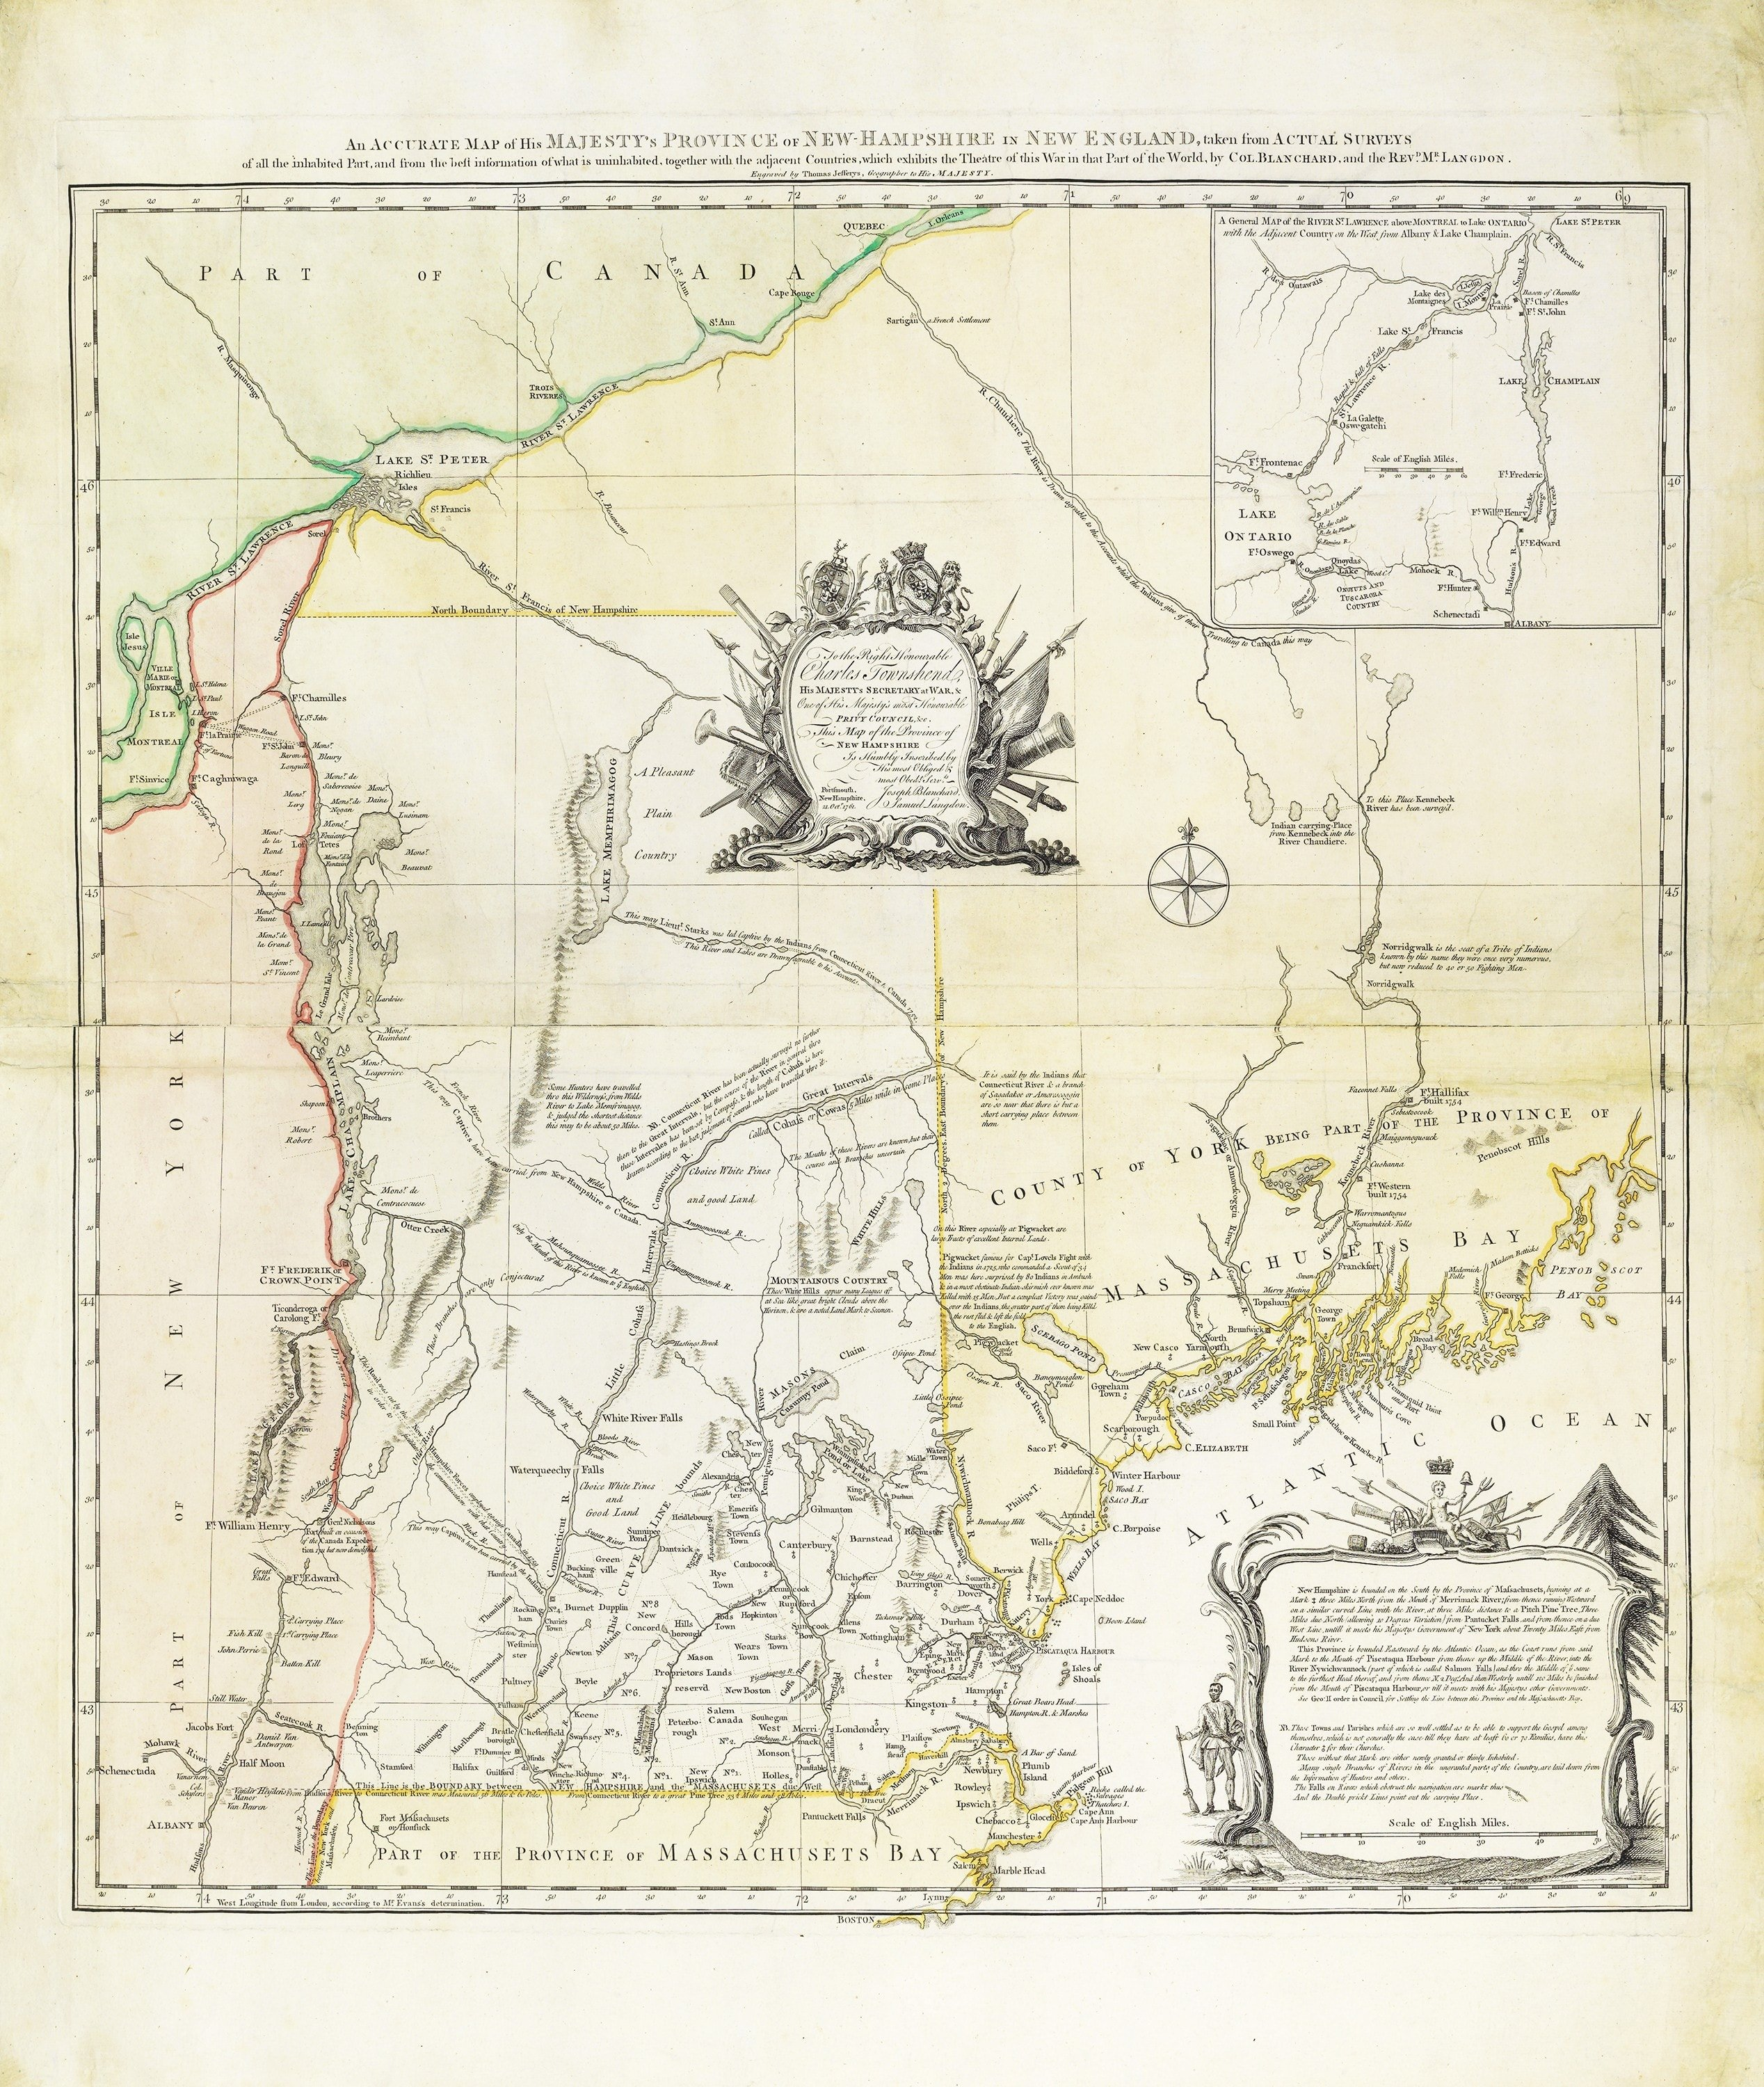 Landmark Map Of New Hampshire Rare Antique Maps - Map of new hampshire